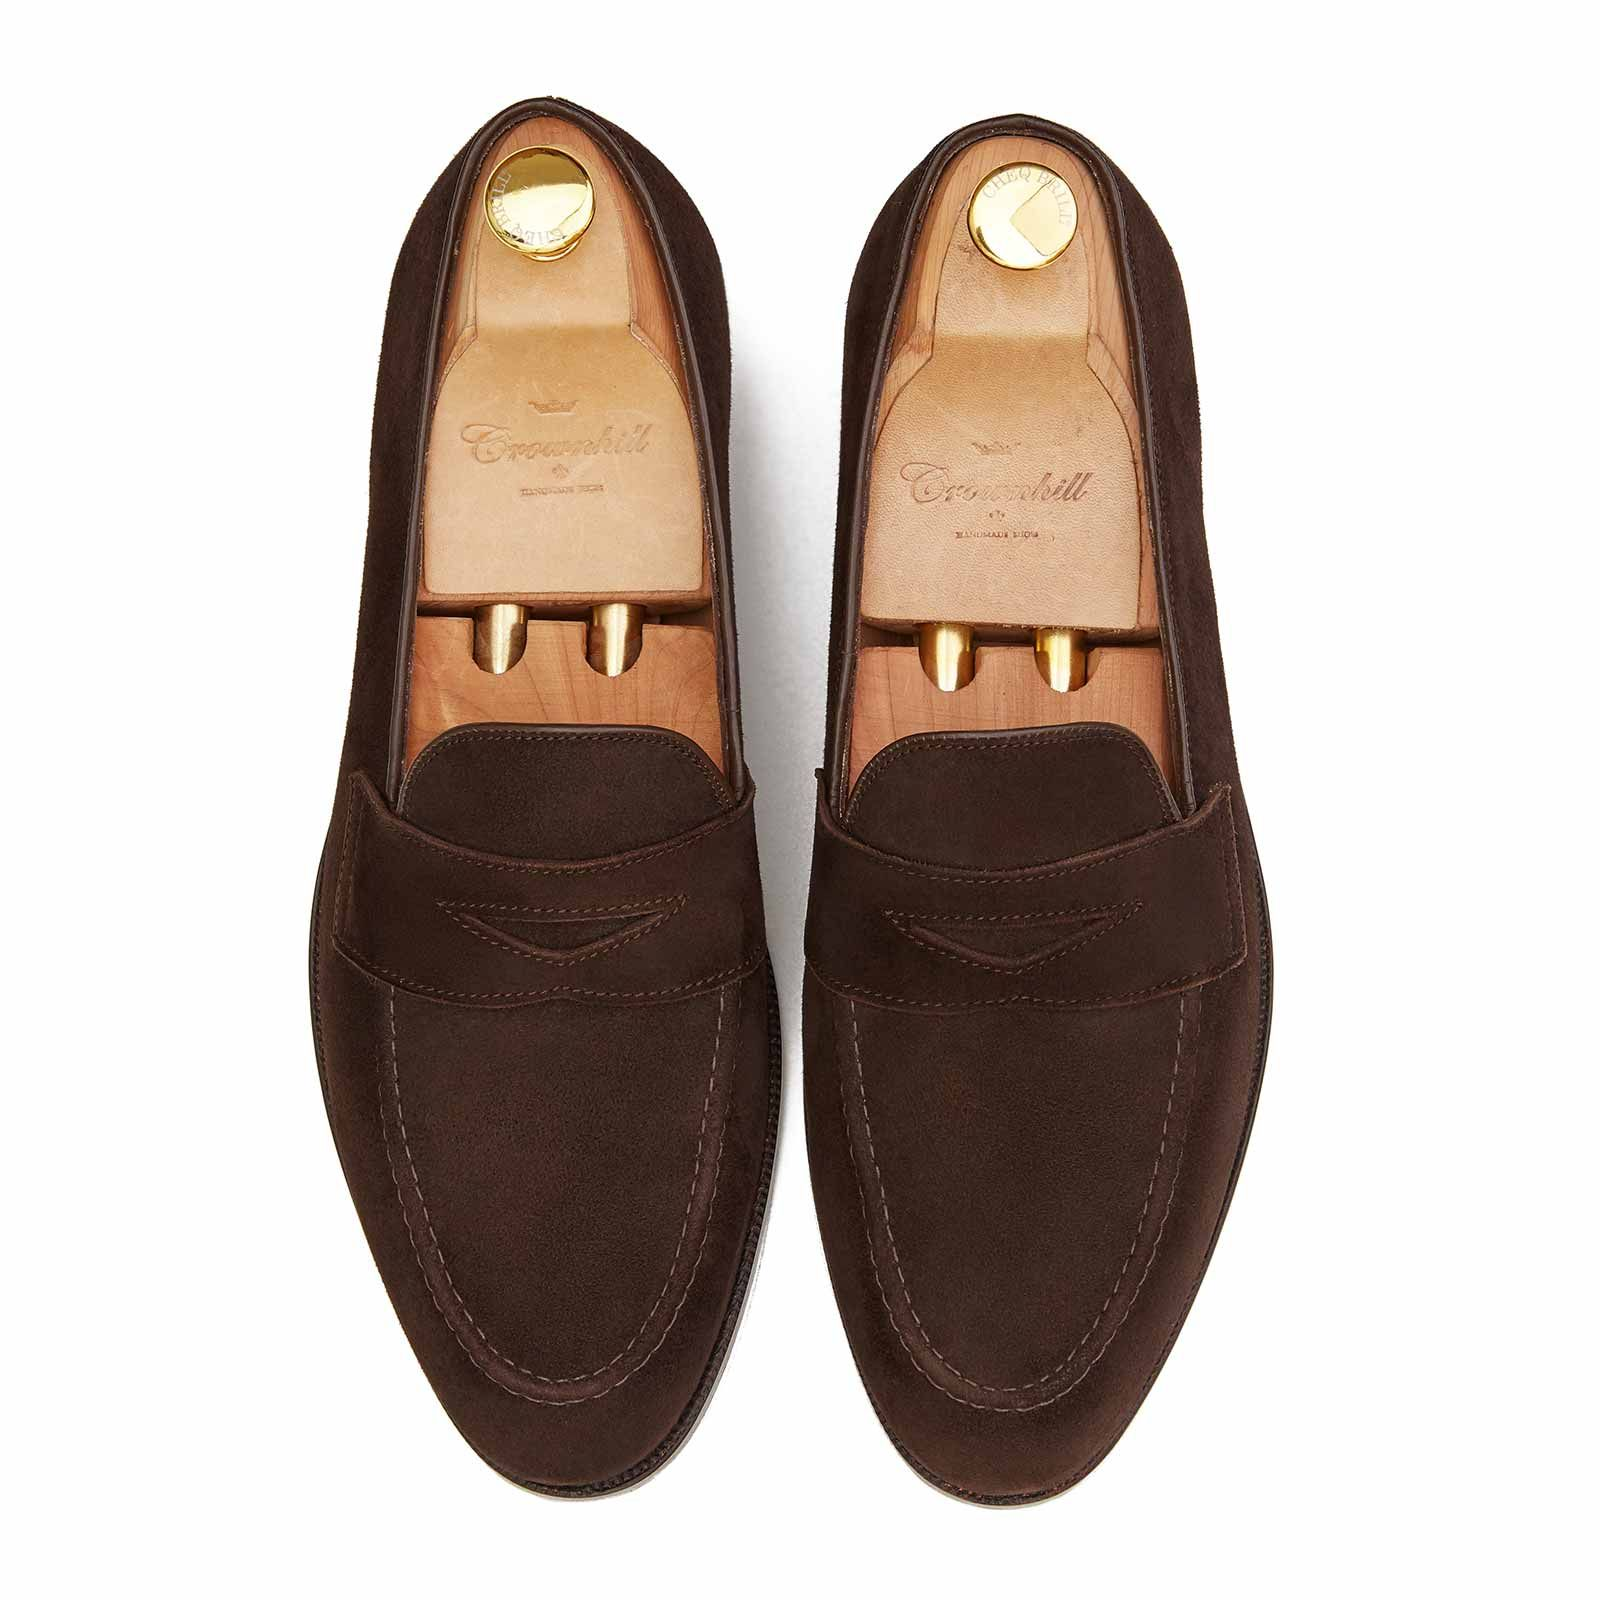 The Leipzig: Brown suede penny loafer